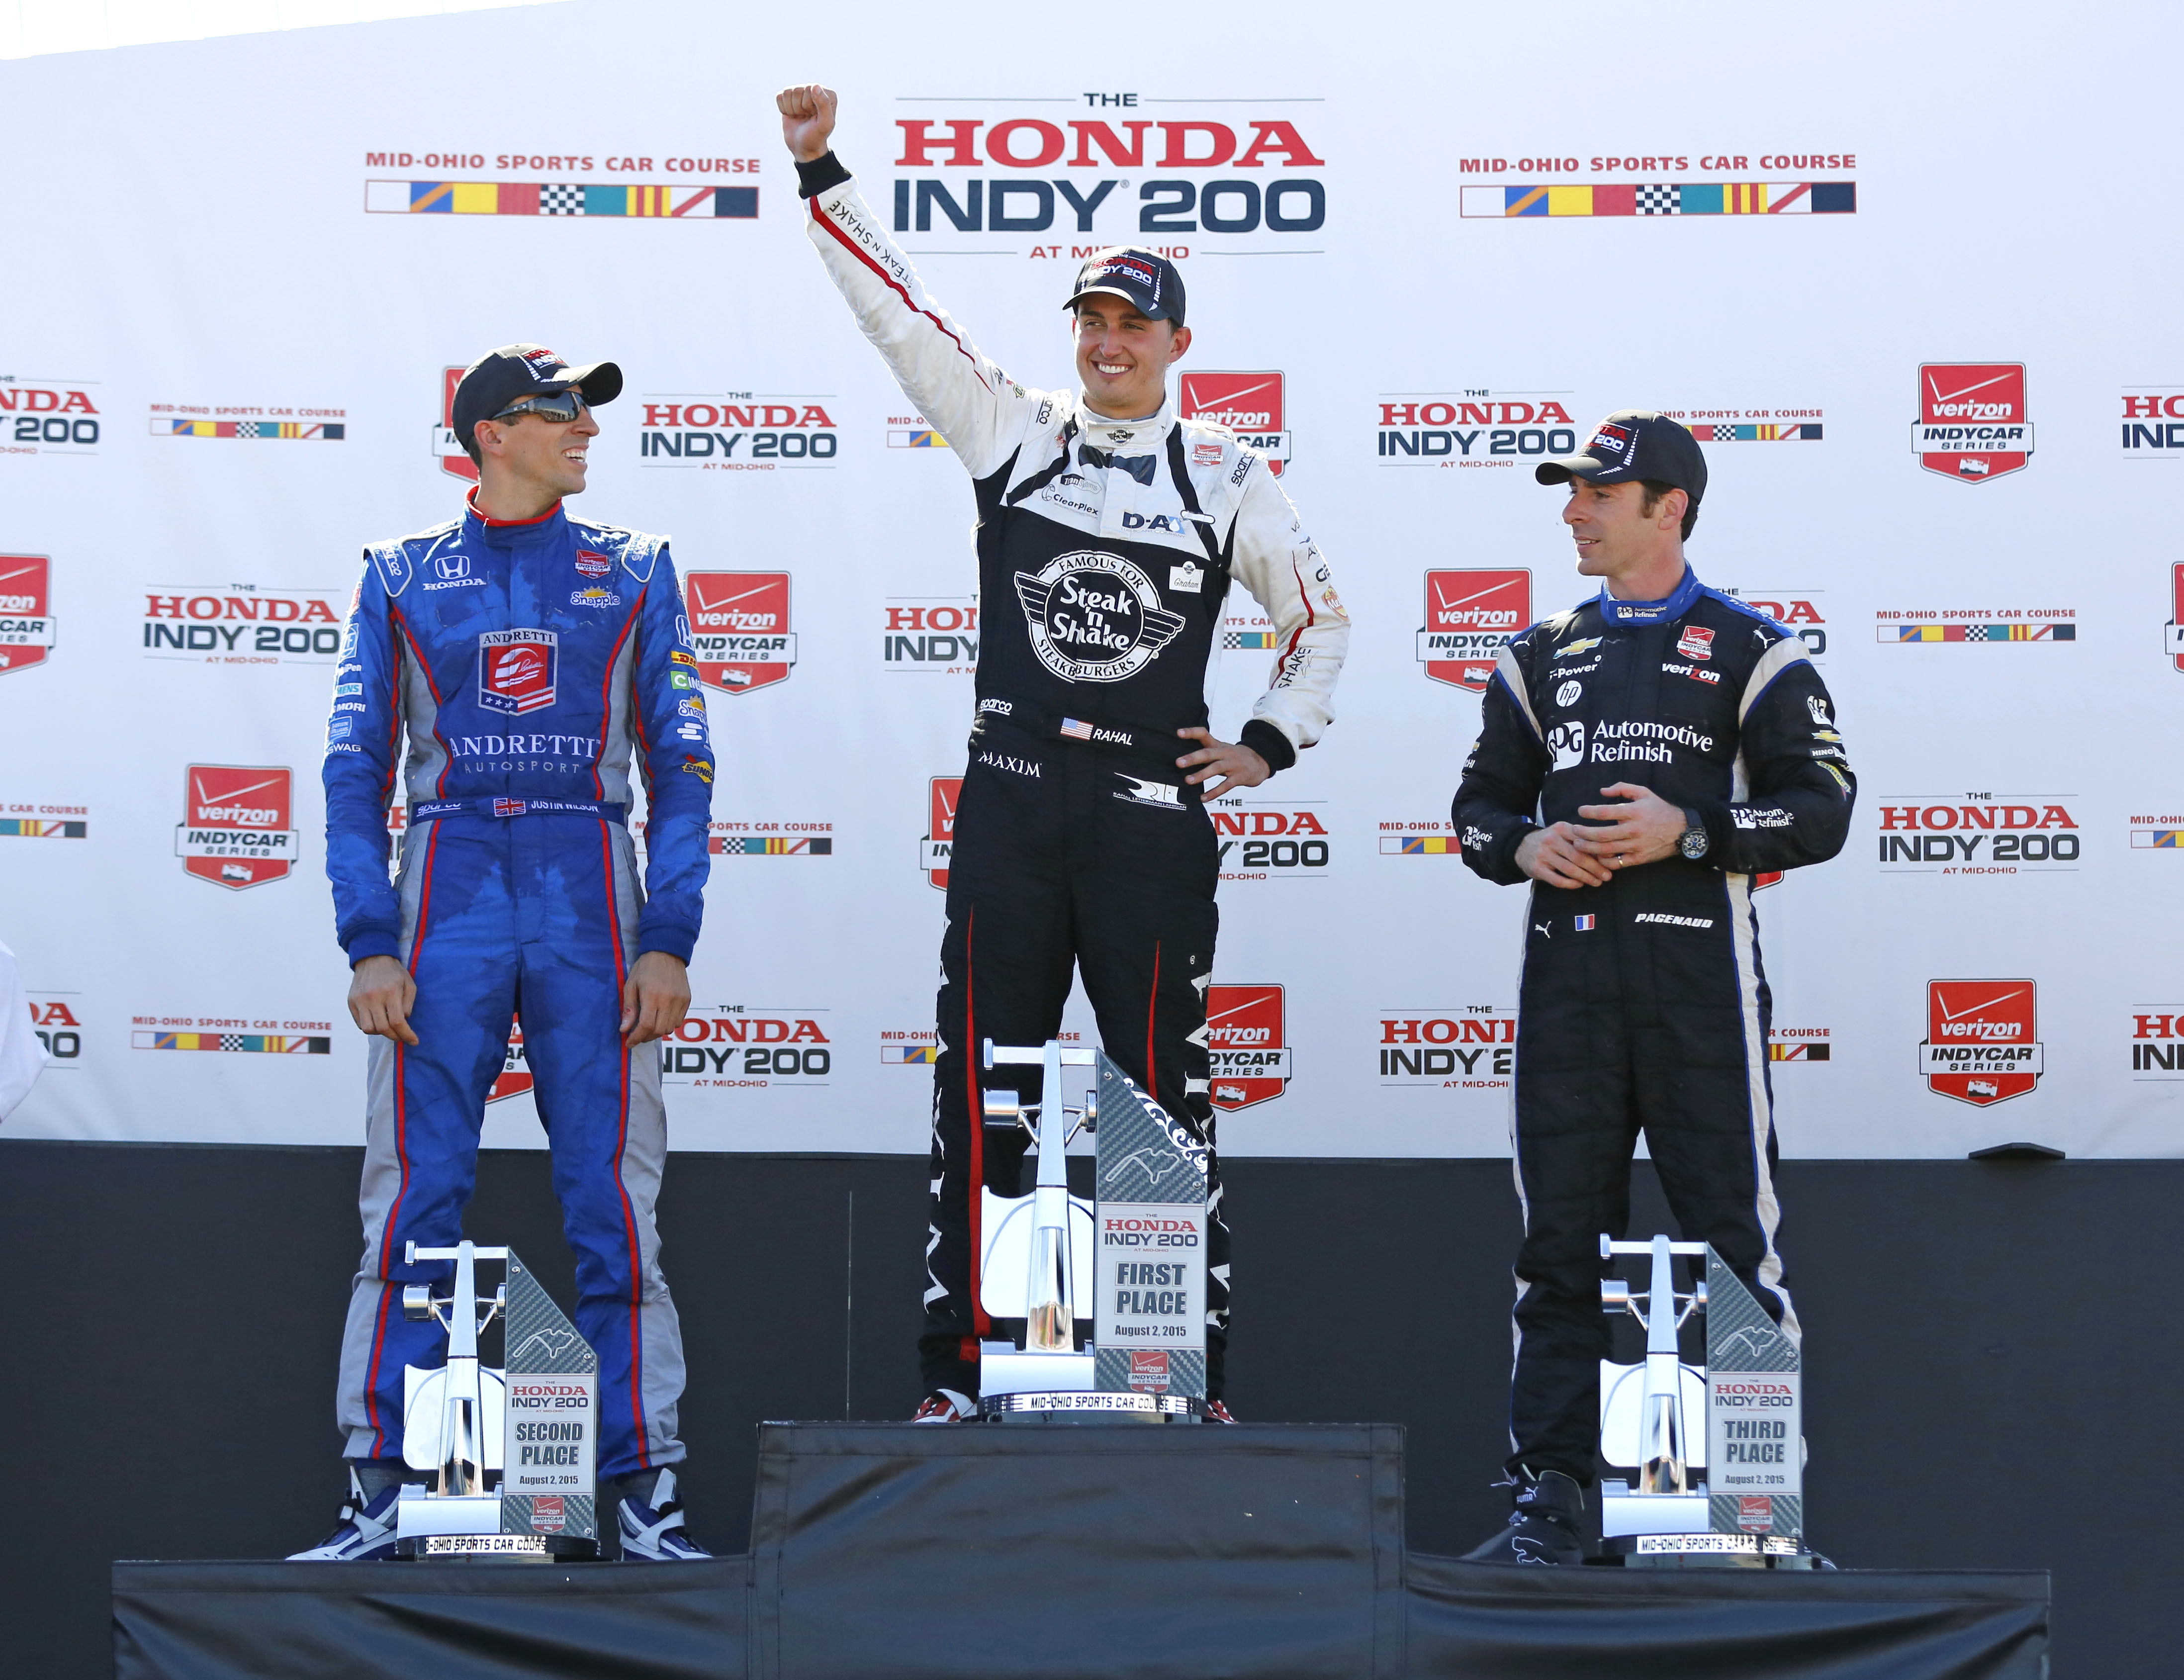 Graham Rahal, center, celebrates on the podium at Mid-Ohio with runner-up Justin Wilson, left, and third-place finisher Simon Pagenaud. (Aaron Doster, USA TODAY Sports)